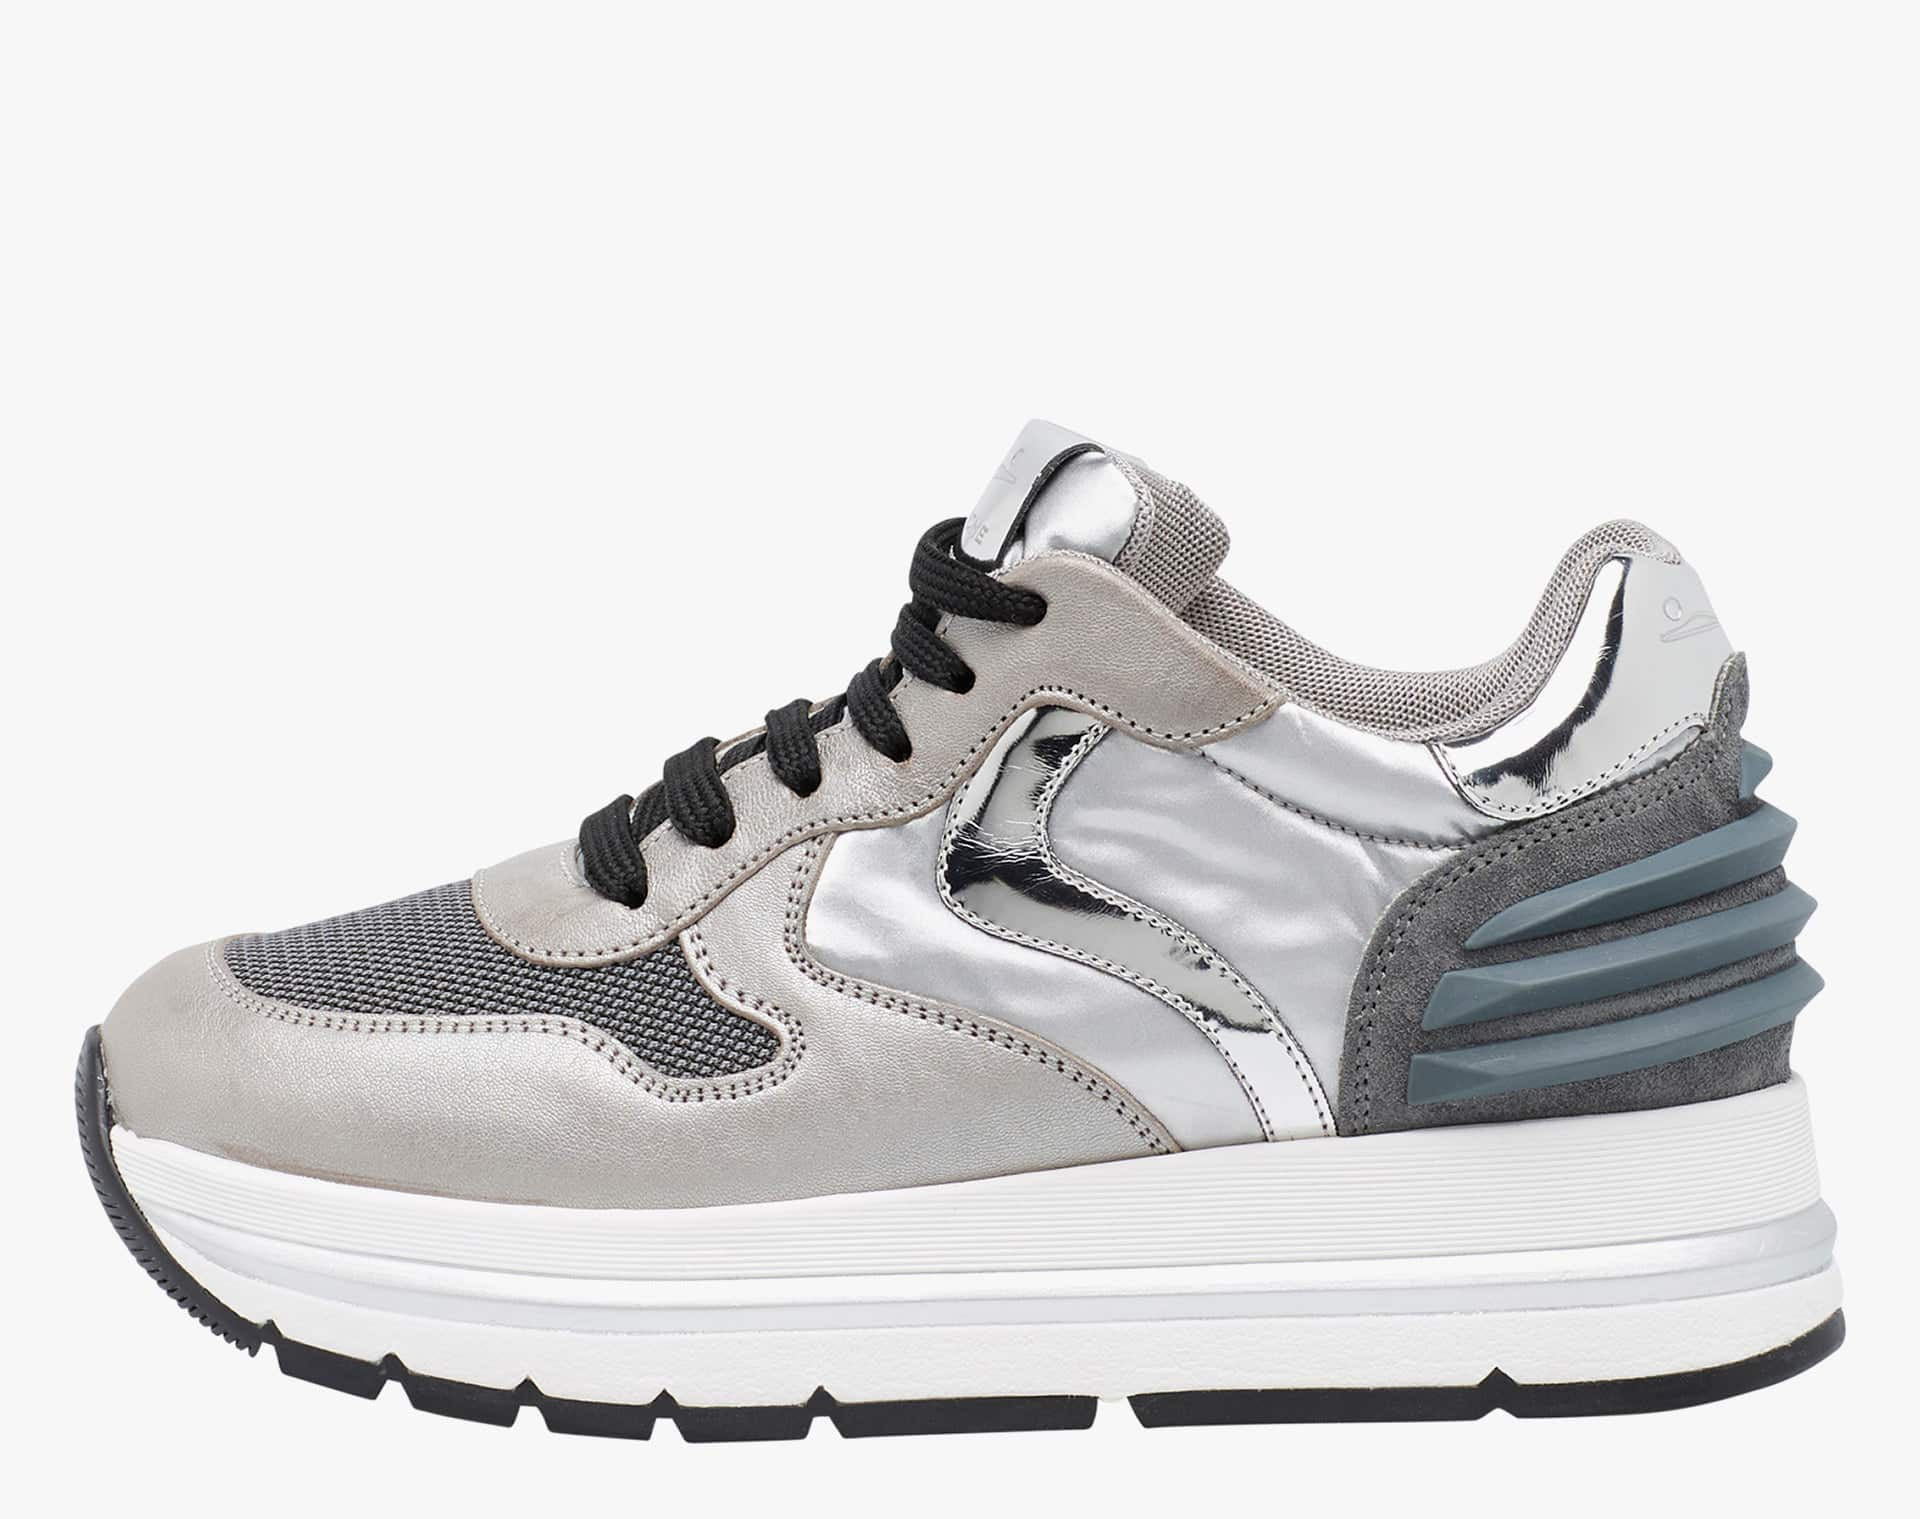 MARAN POWER - Leather and cordura sneaker - Grey/Silver